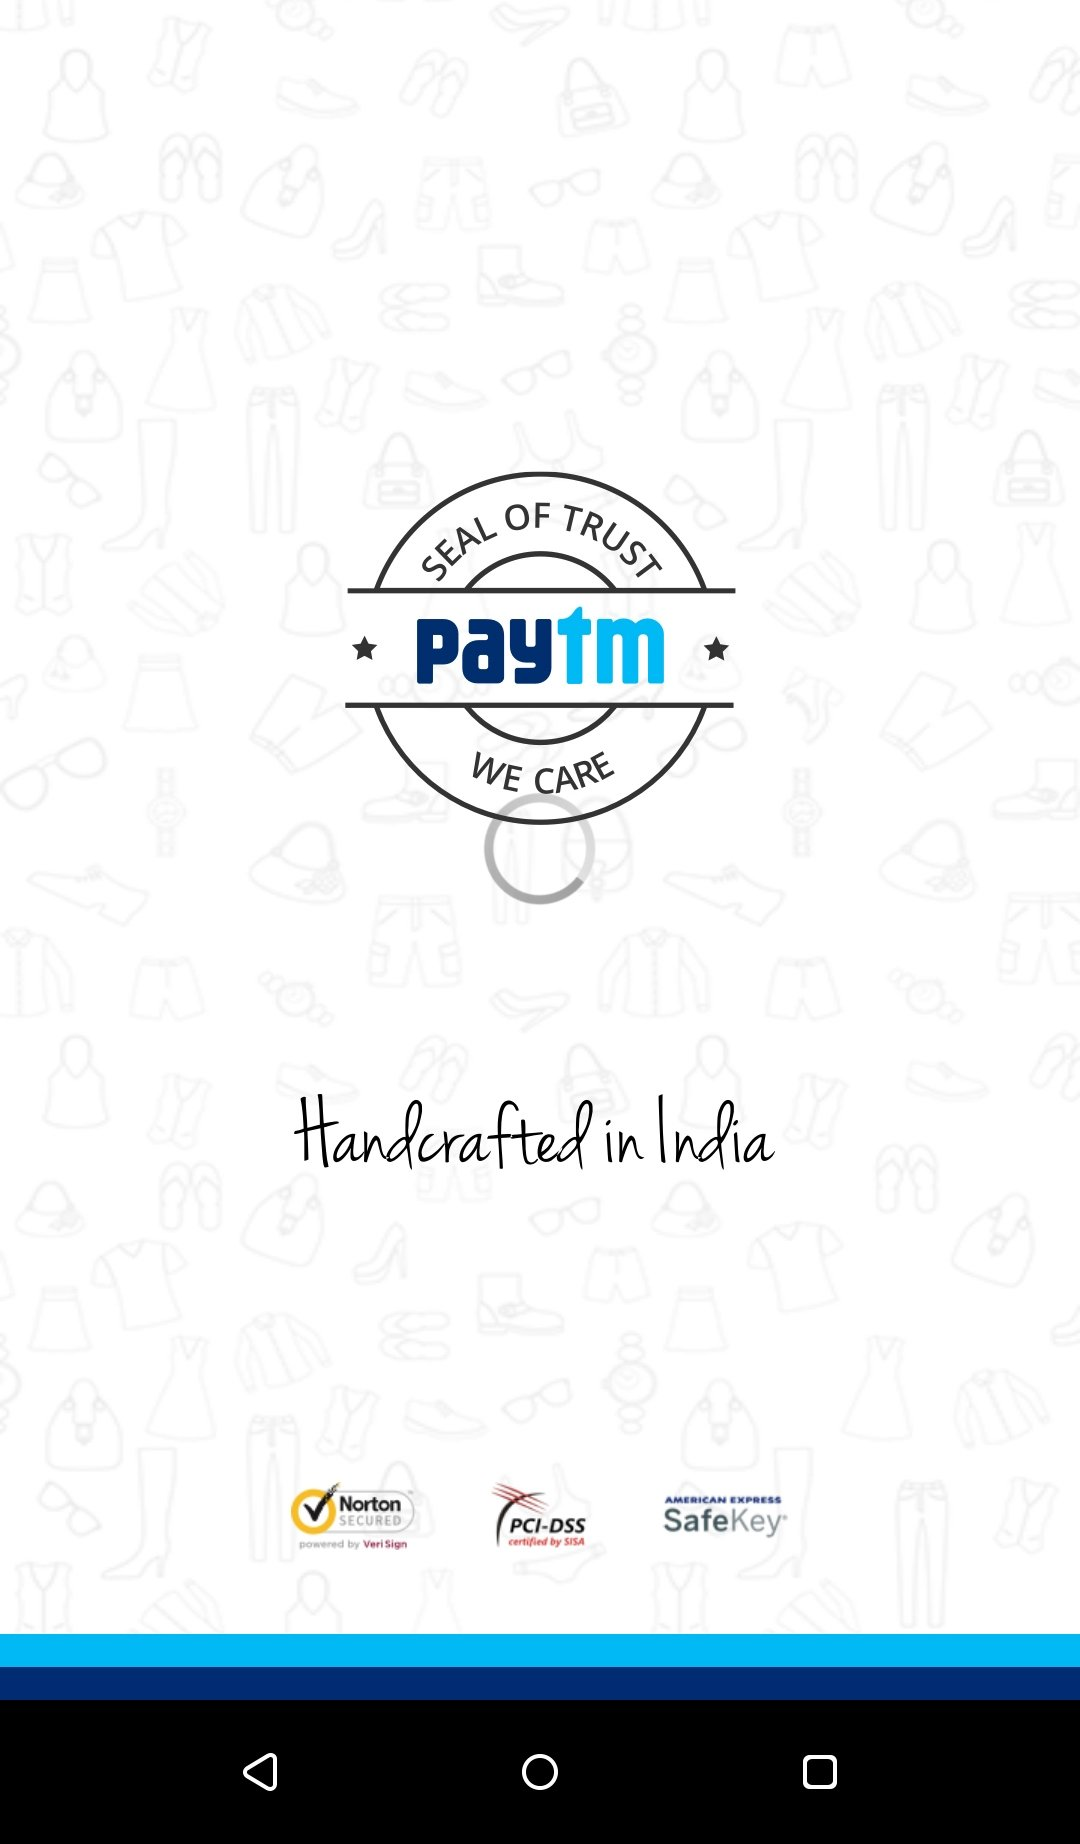 Paytm - Payments, Wallet & Recharge Android image 8